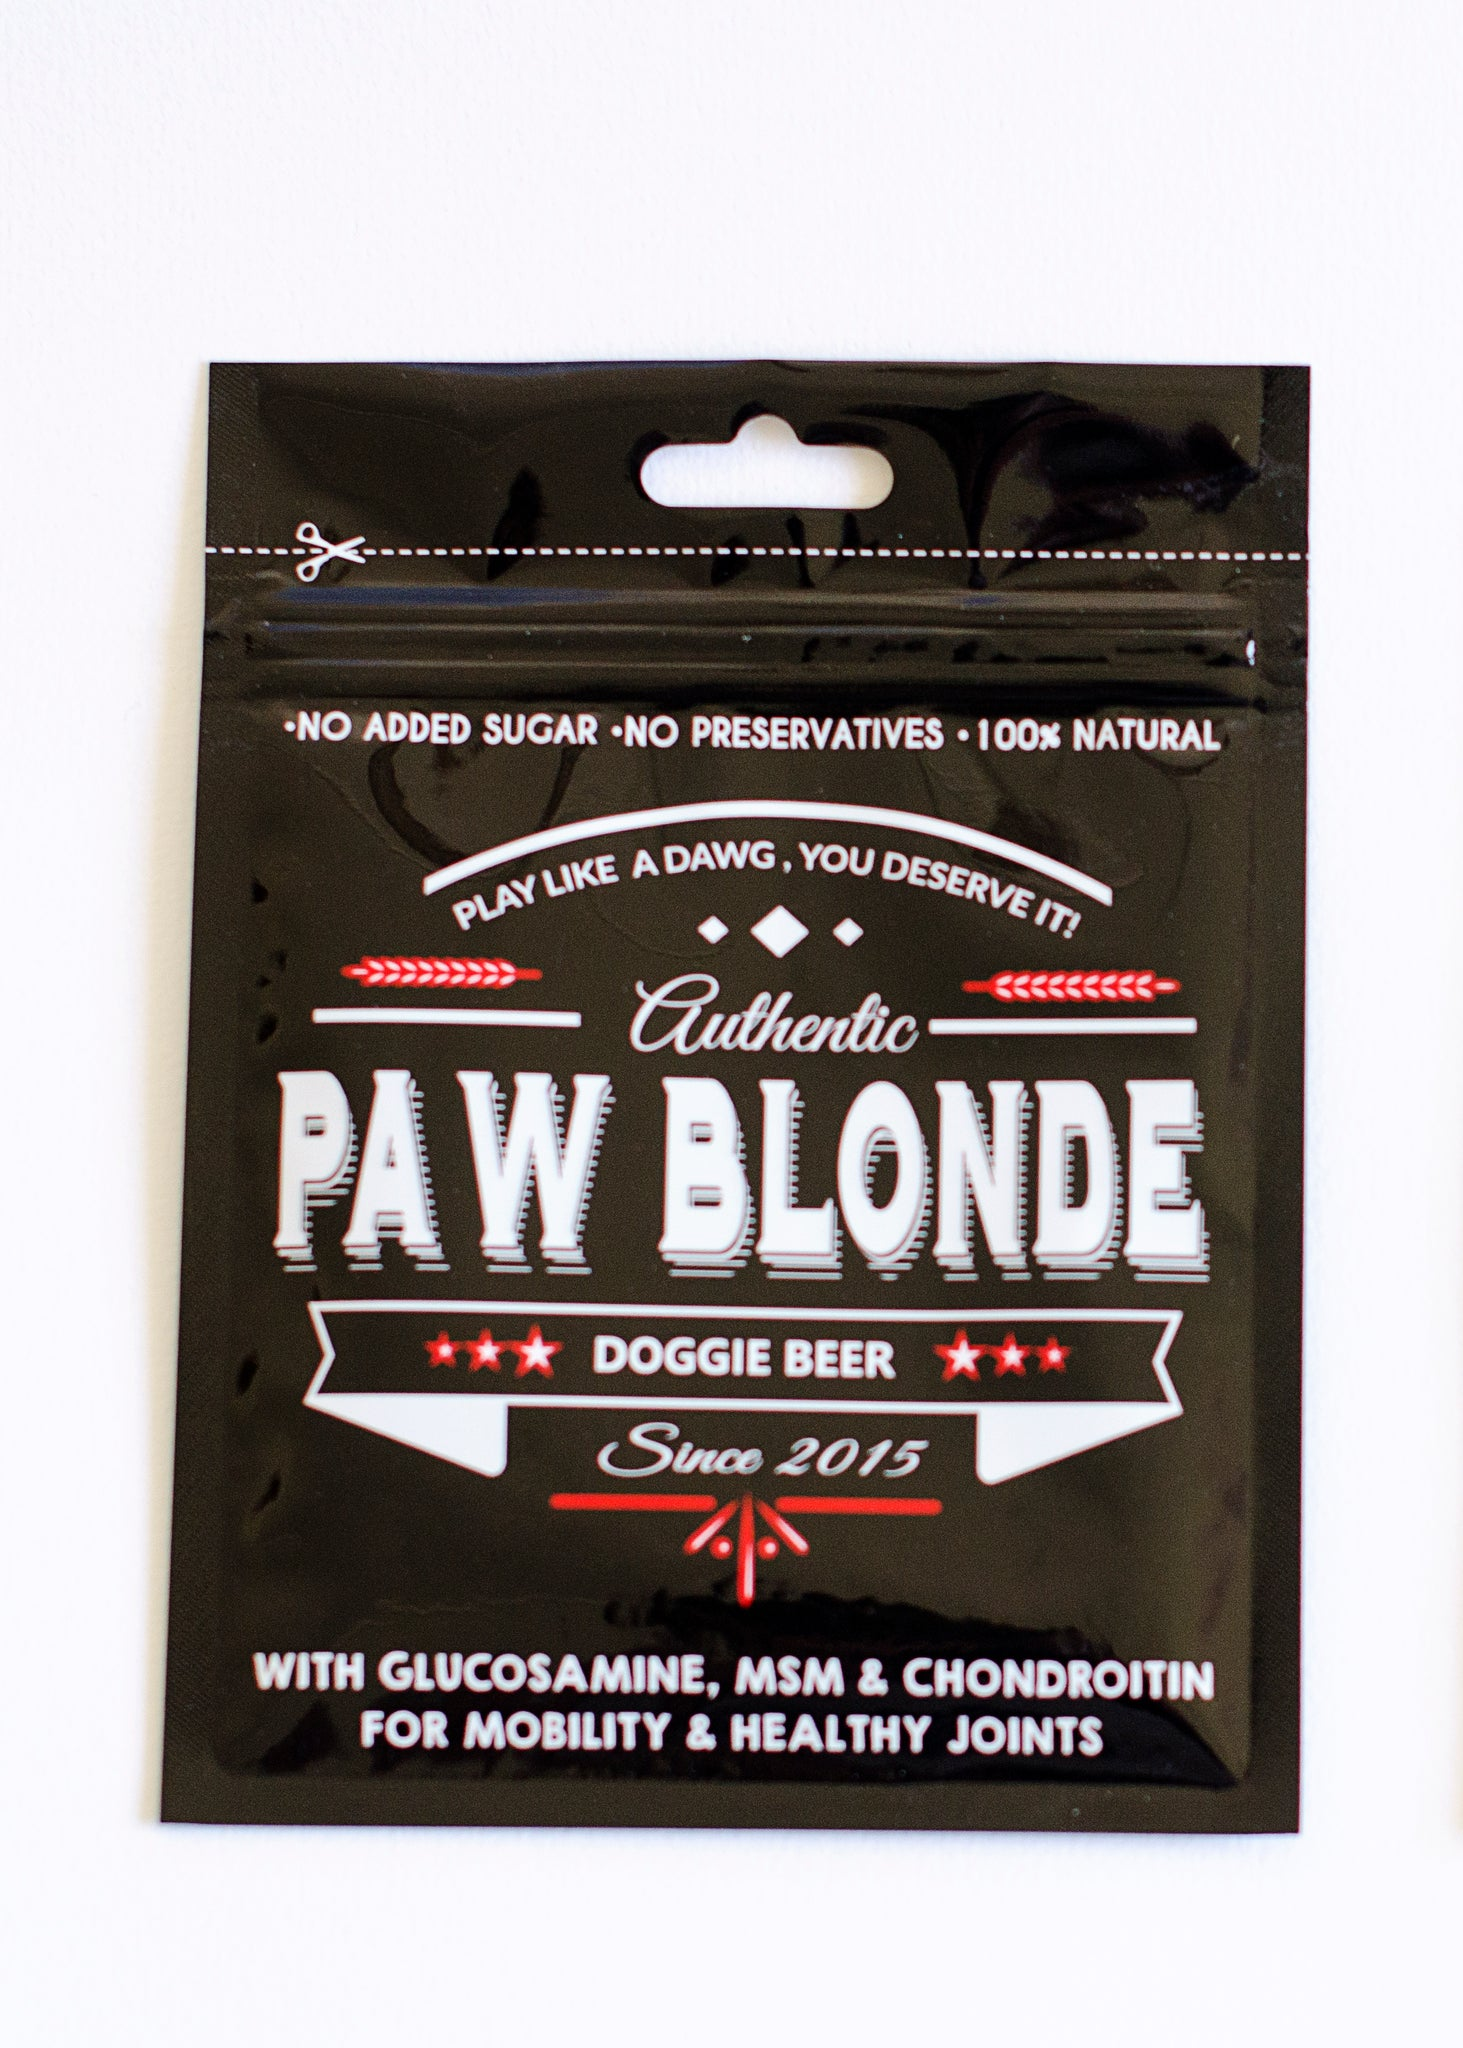 PAW BLONDE DOGGIE BEER